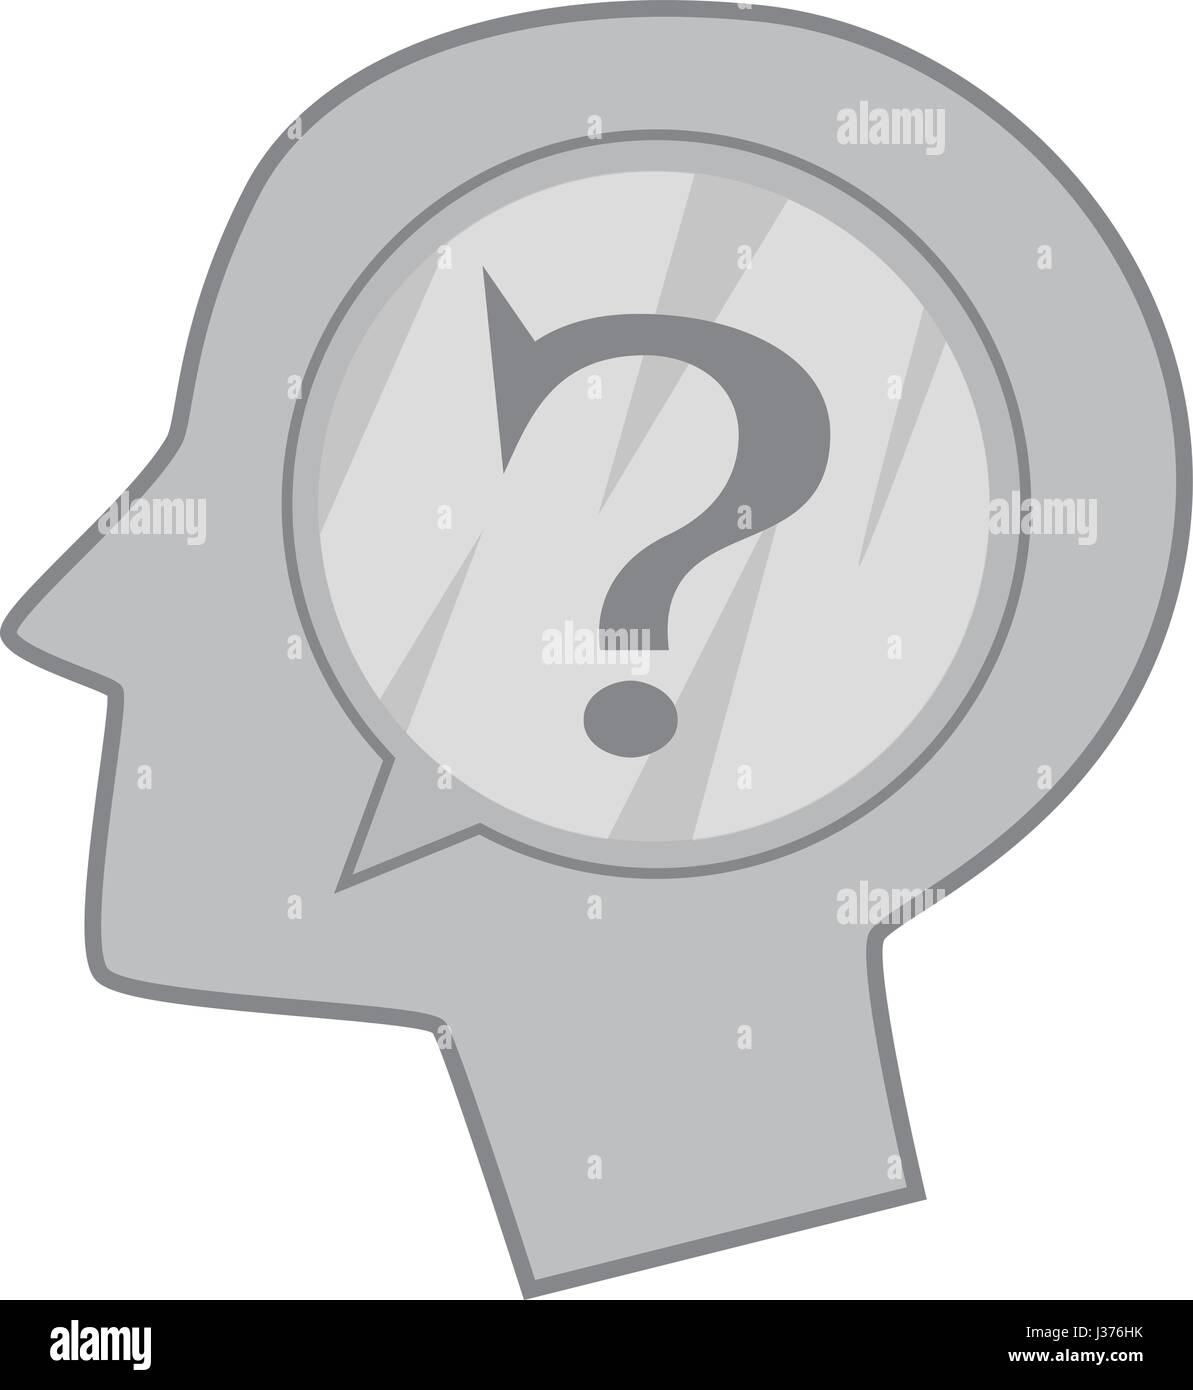 Pics photos clip art cartoon scientist with question mark stock - Head Silhouette With Question Mark Inside Icon Stock Image